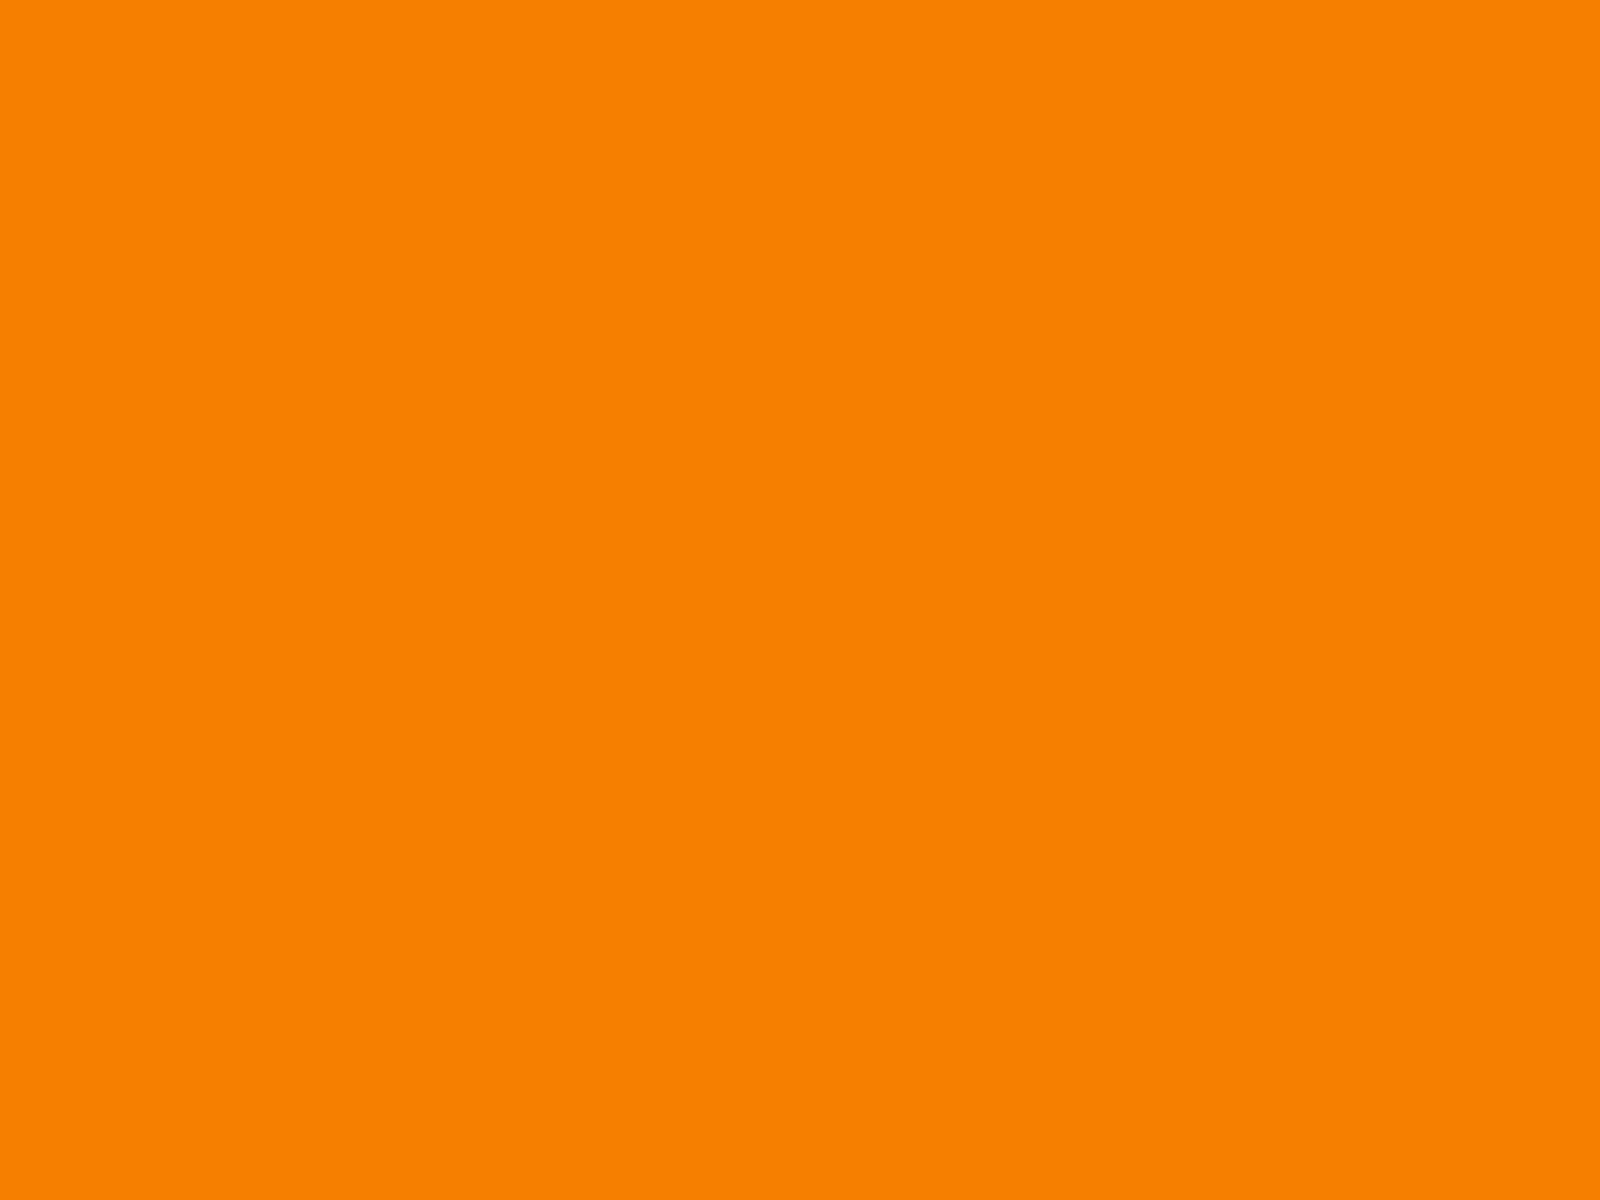 1600x1200 University Of Tennessee Orange Solid Color Background